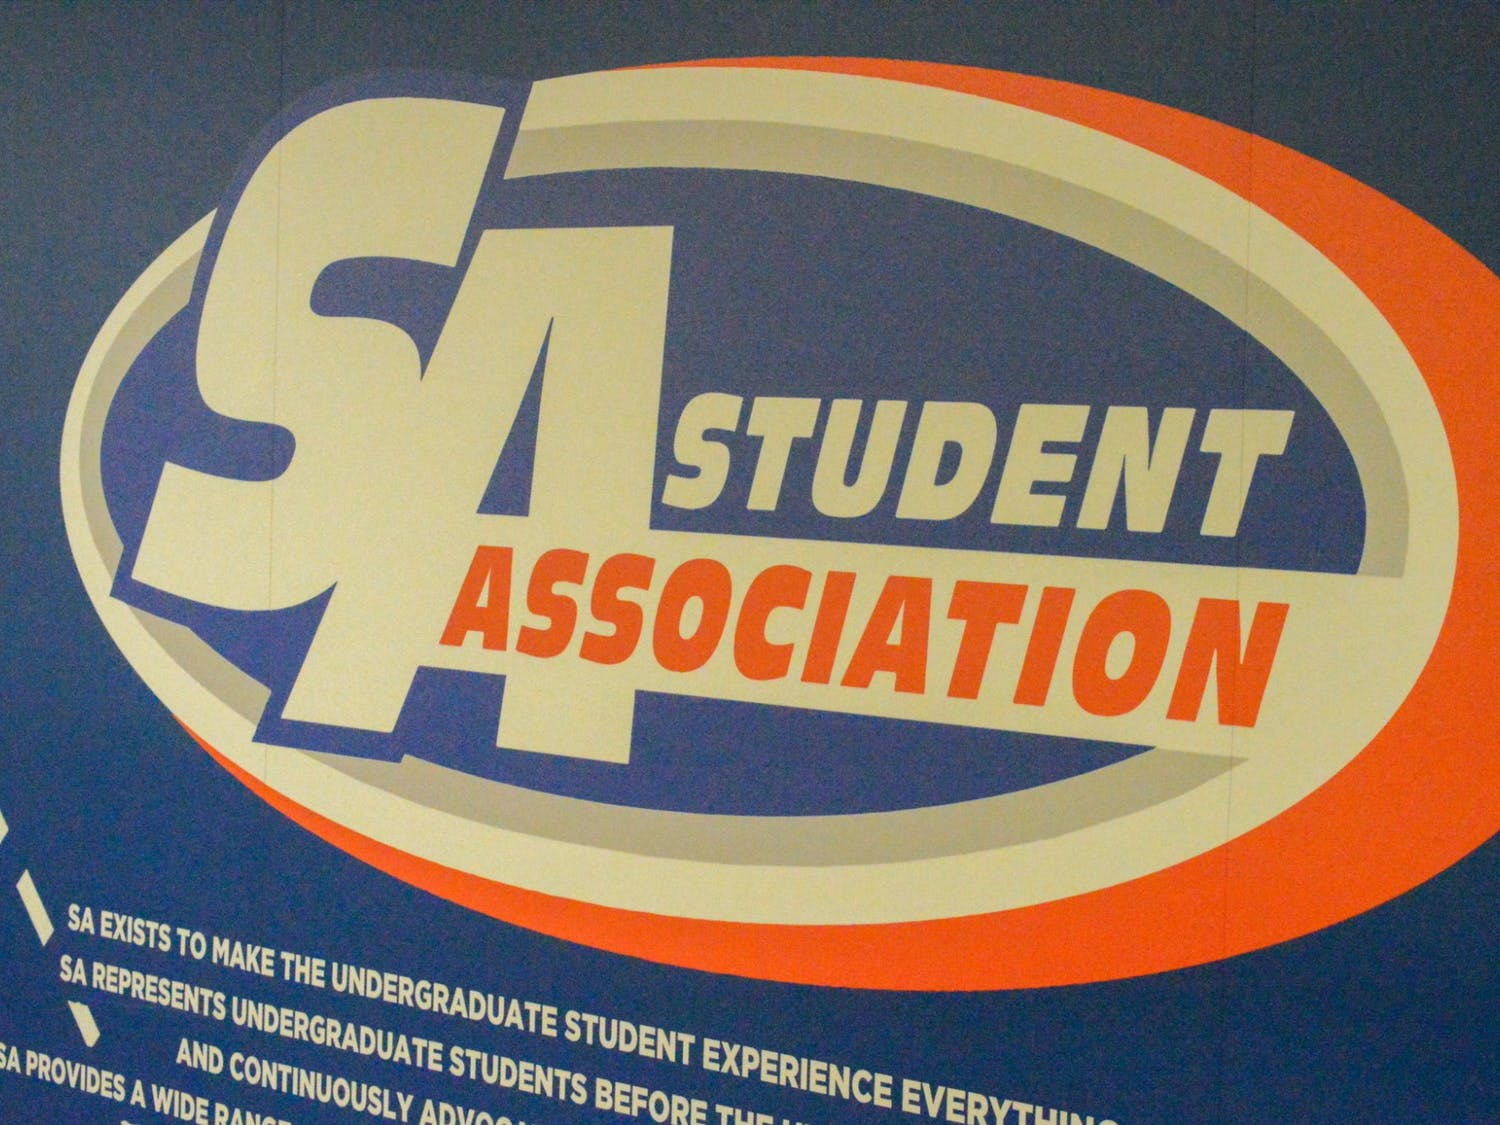 Four students are running for 12 open positions on the Student Association Senate.